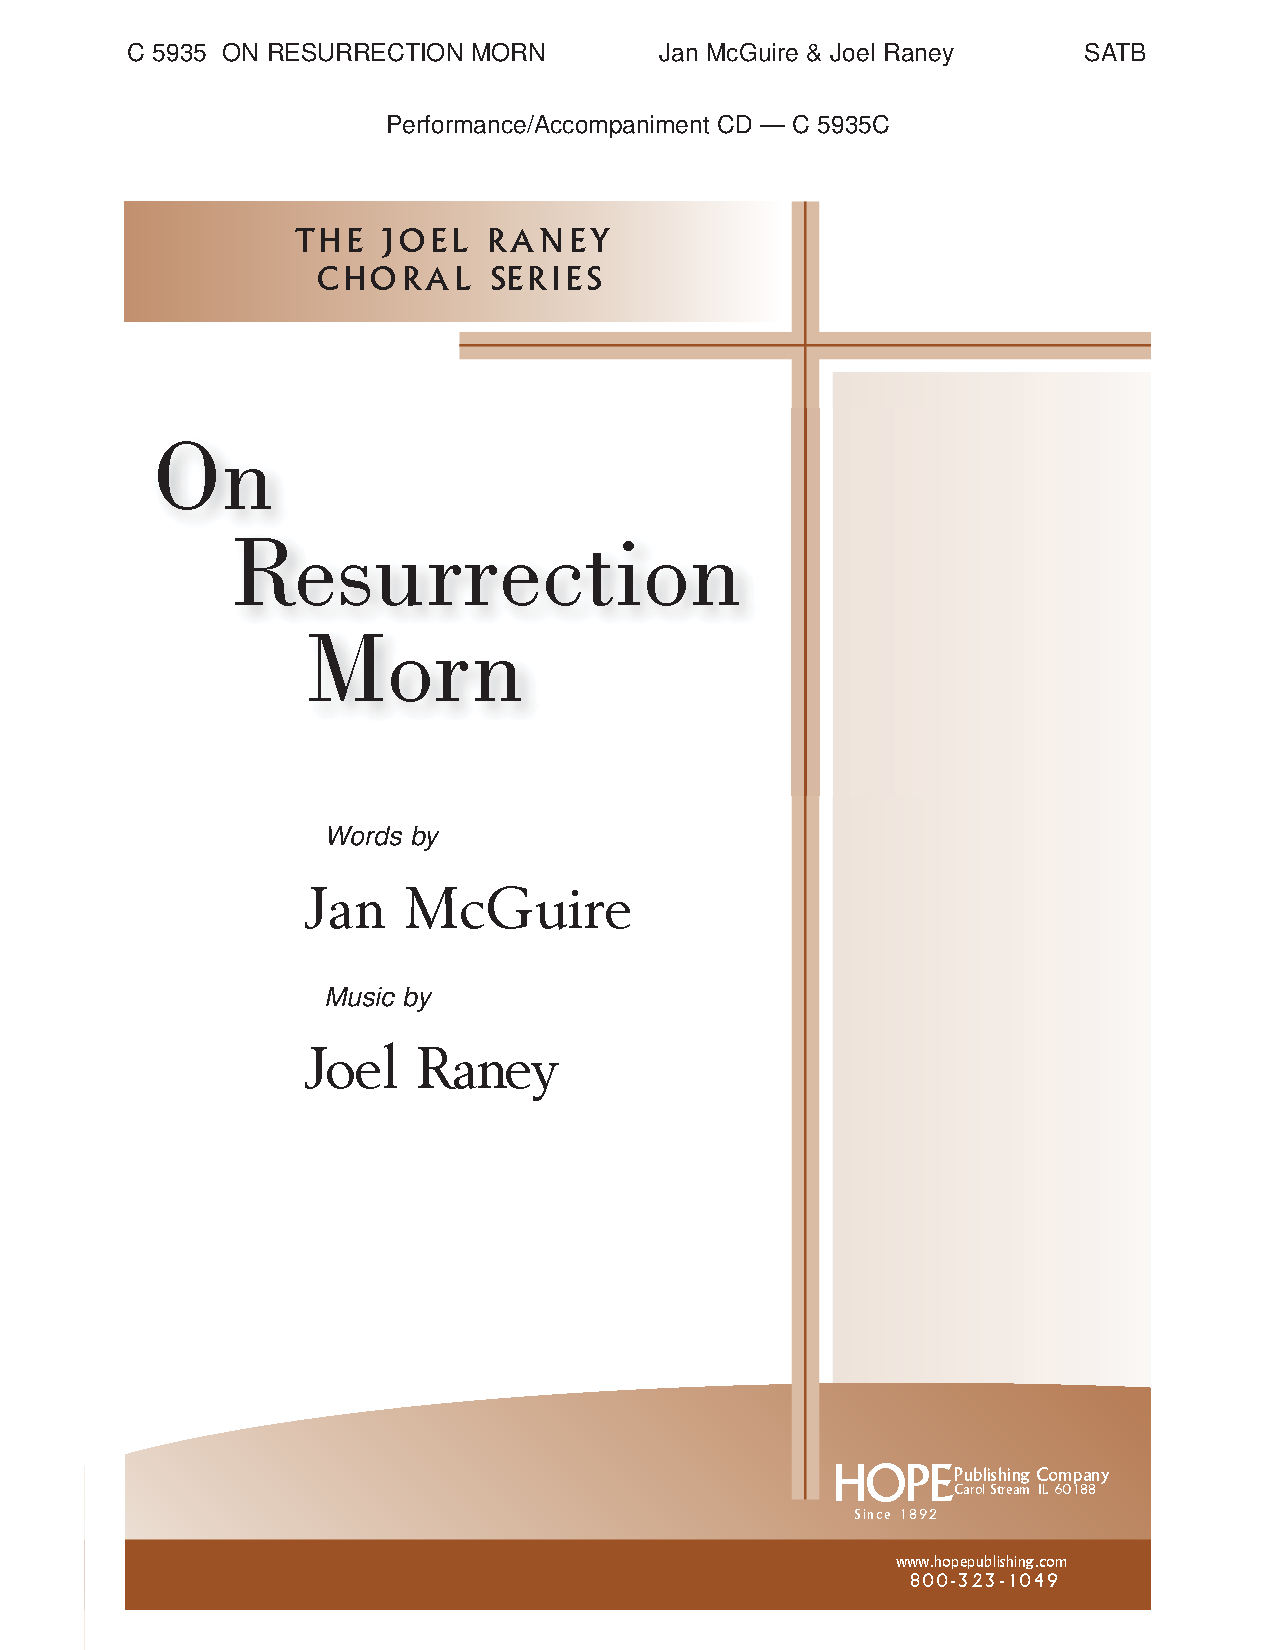 Lyrics containing the term: ressurection morn by the perry ...